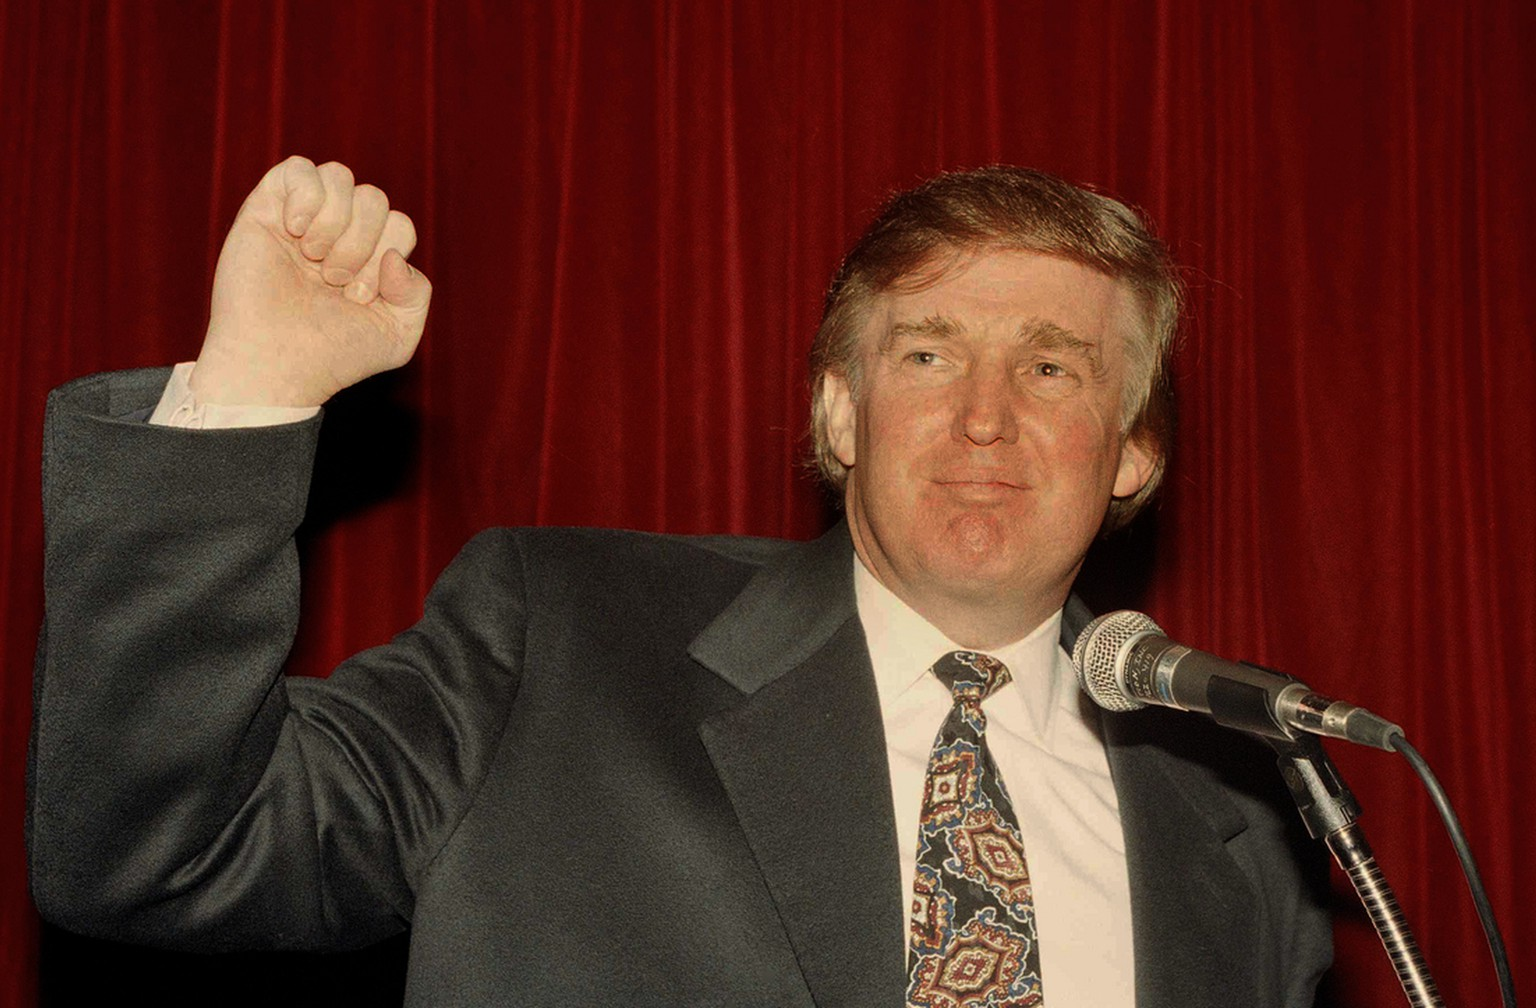 Donald Trump raises his fist at a news conference New York where he denounced a New York Post report that the Sultan of Brunei is interested in buying the Plaza, the landmark hotel overlooking Central Park, Dec. 21, 1994. Trump, who operates the Plaza, threatened to sue the Post for $500 million after the paper reported that the Sultan had bid $300 million to snatch the Plaza from his control. (AP Photo/Marty Lederhandler)